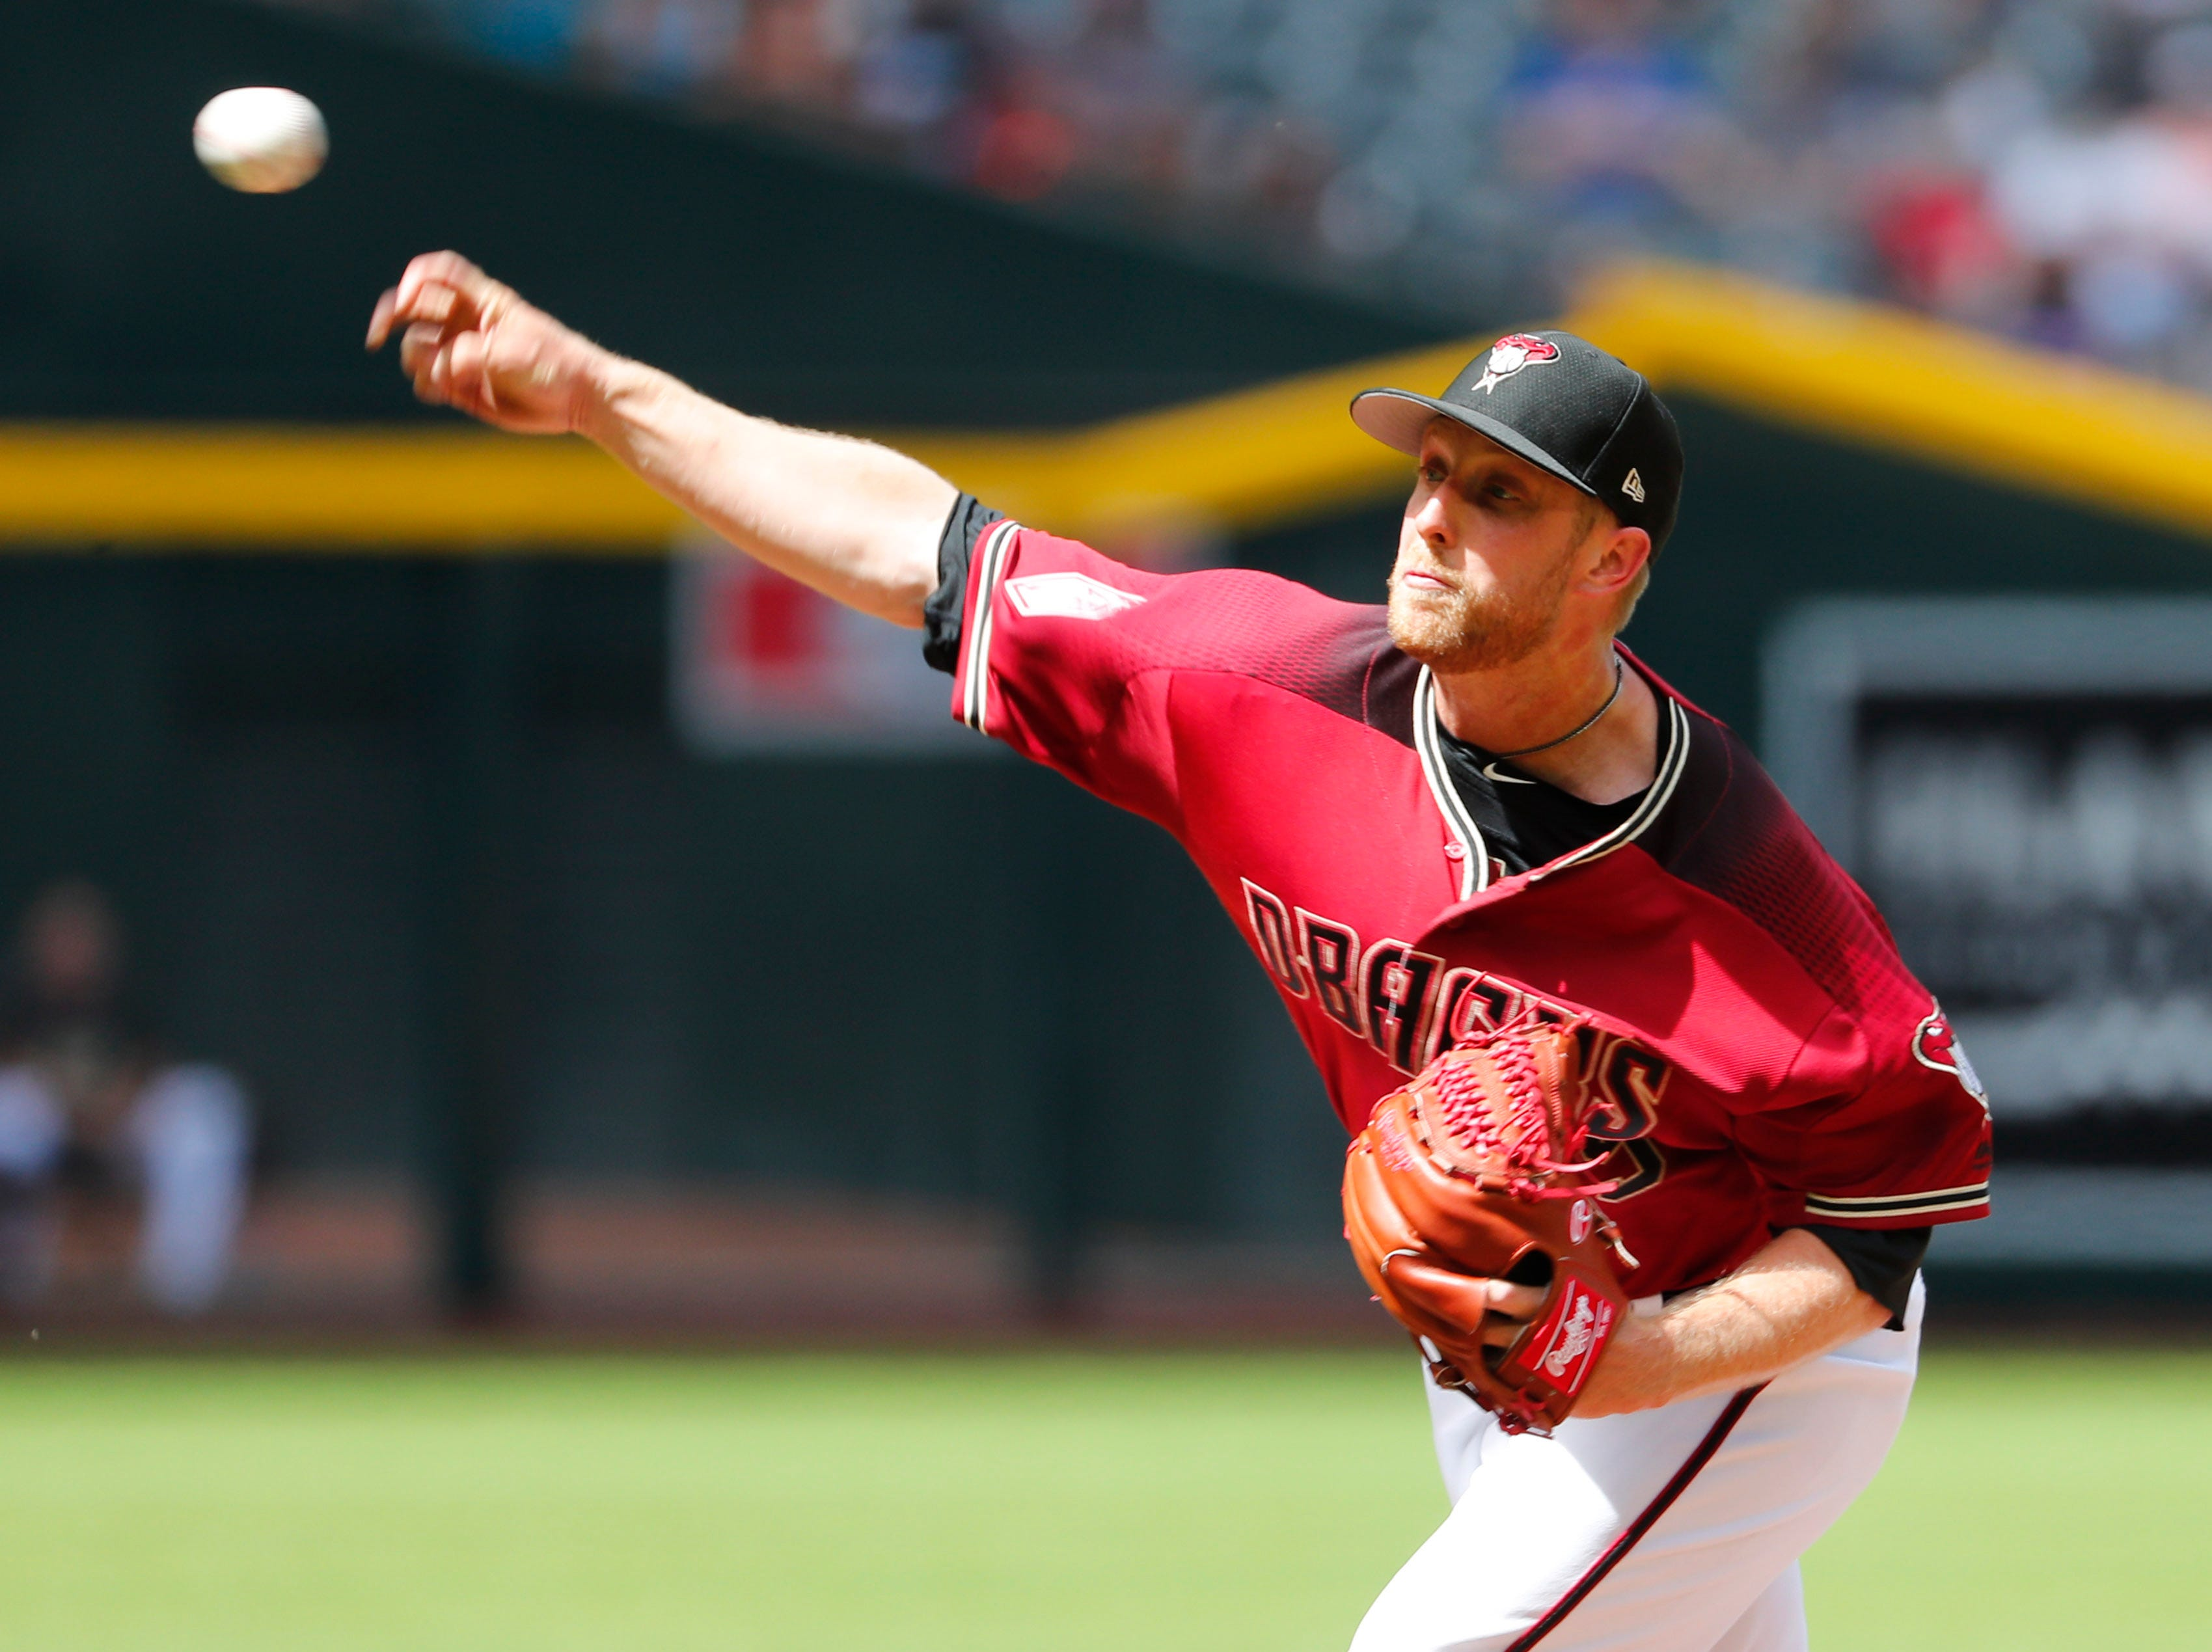 Arizona Diamondbacks starting pitcher Merrill Kelly (29) throws against the Chicago White Sox during spring training action at Chase Field March 26, 2019.